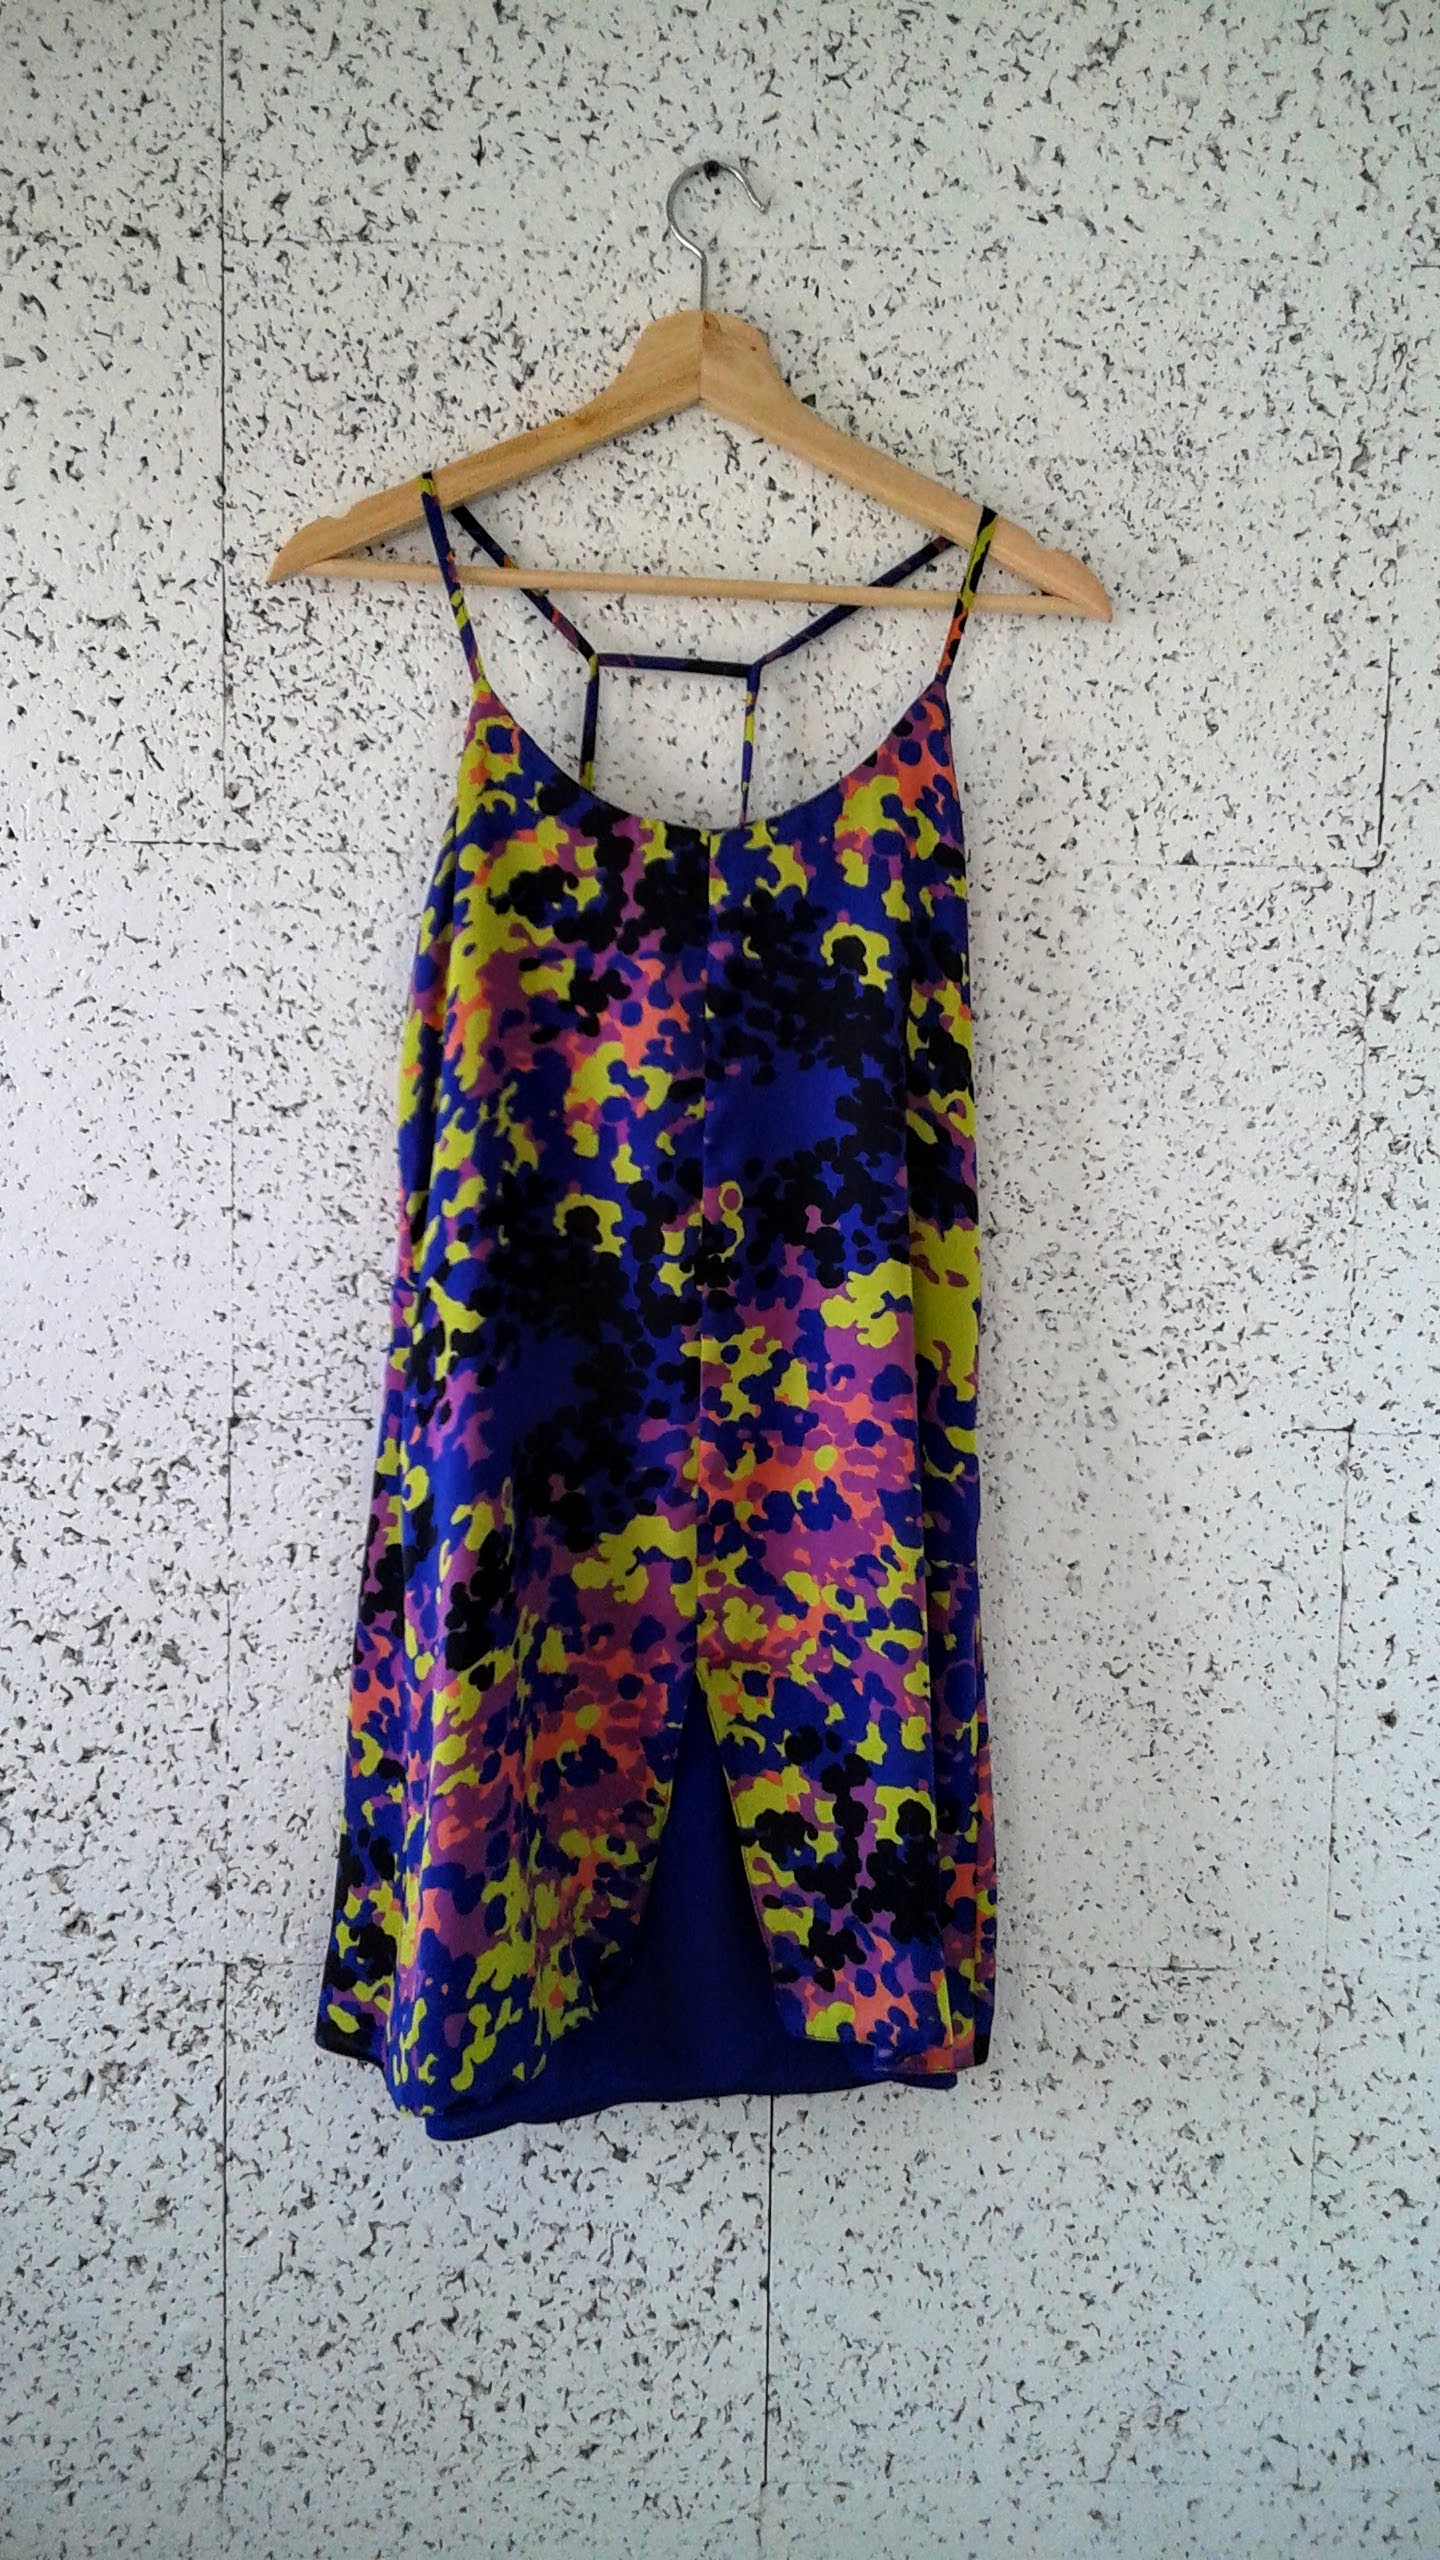 Topshop dress (NWT); Size S, $34